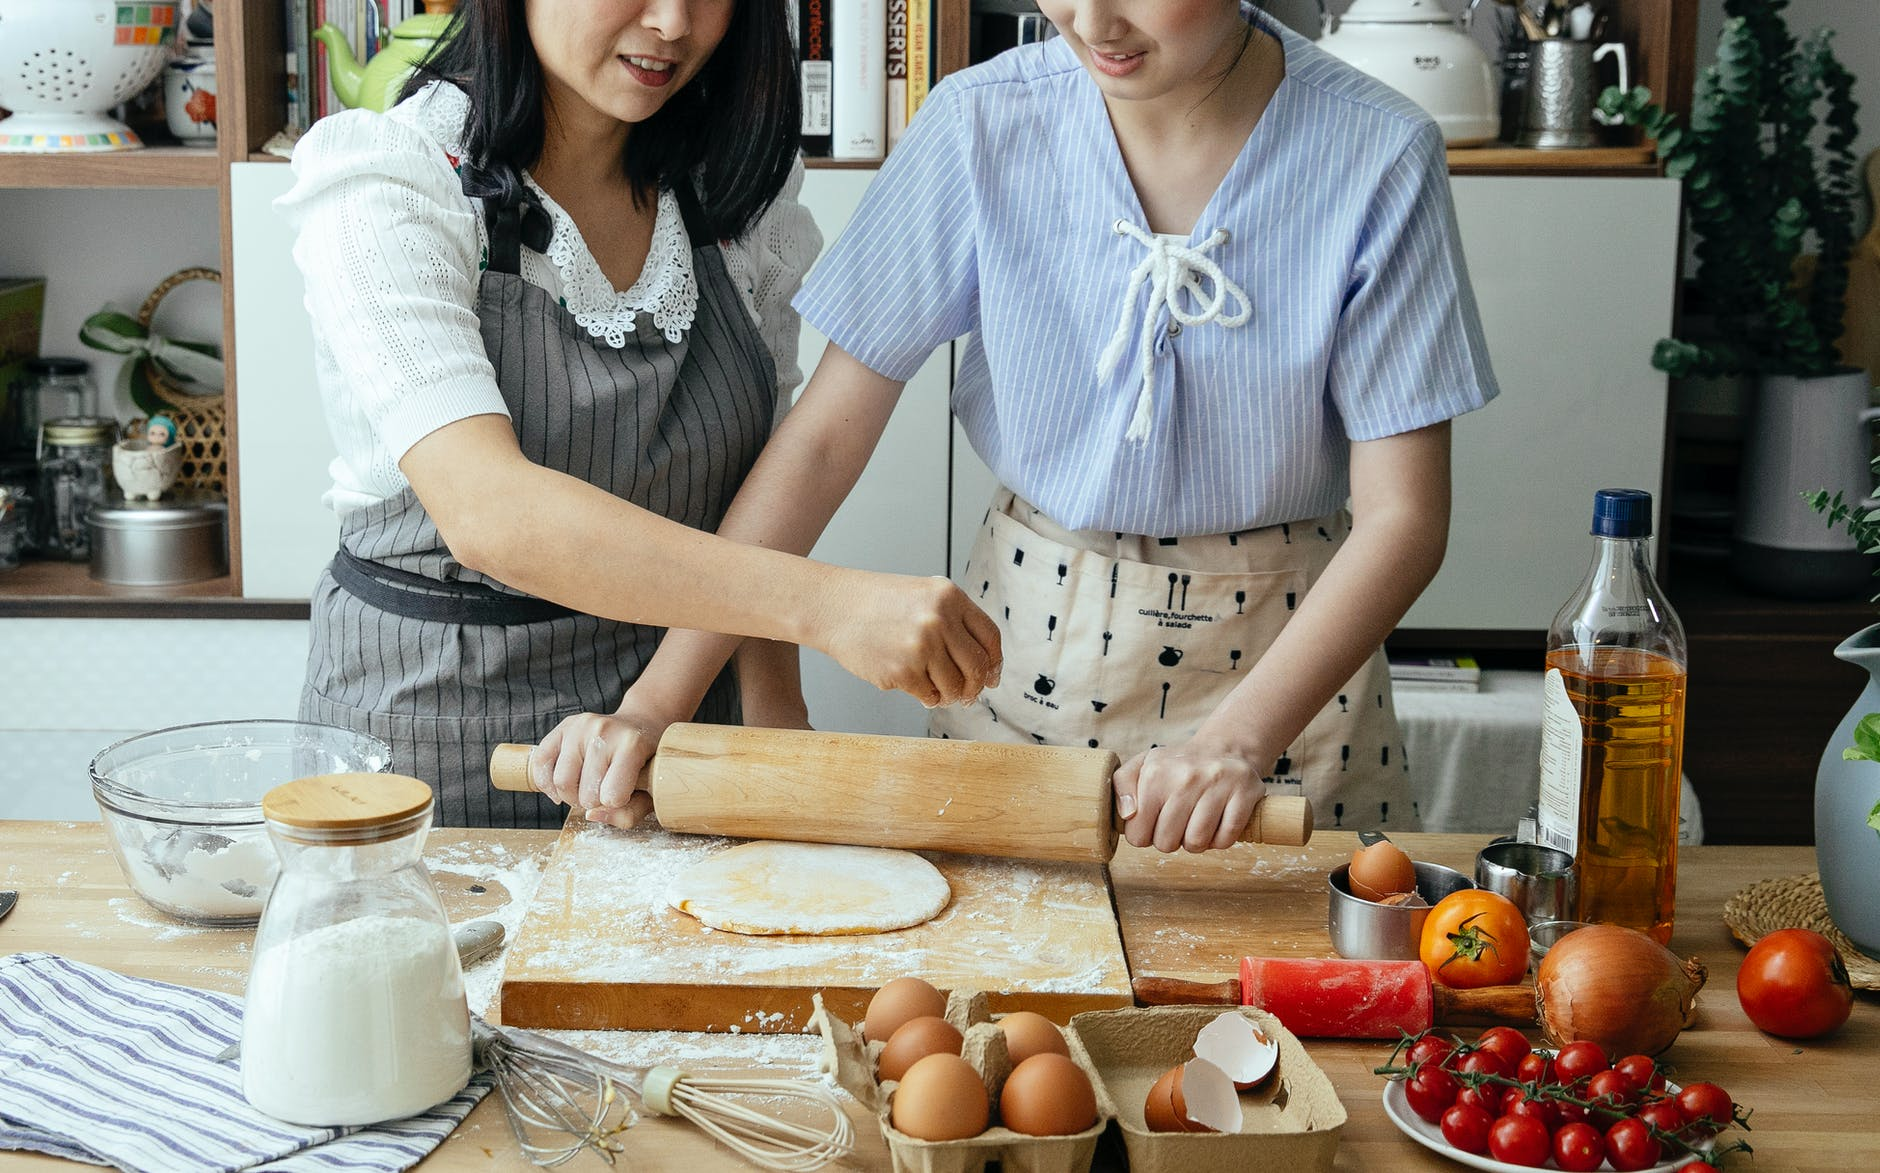 faceless women cooking together at home